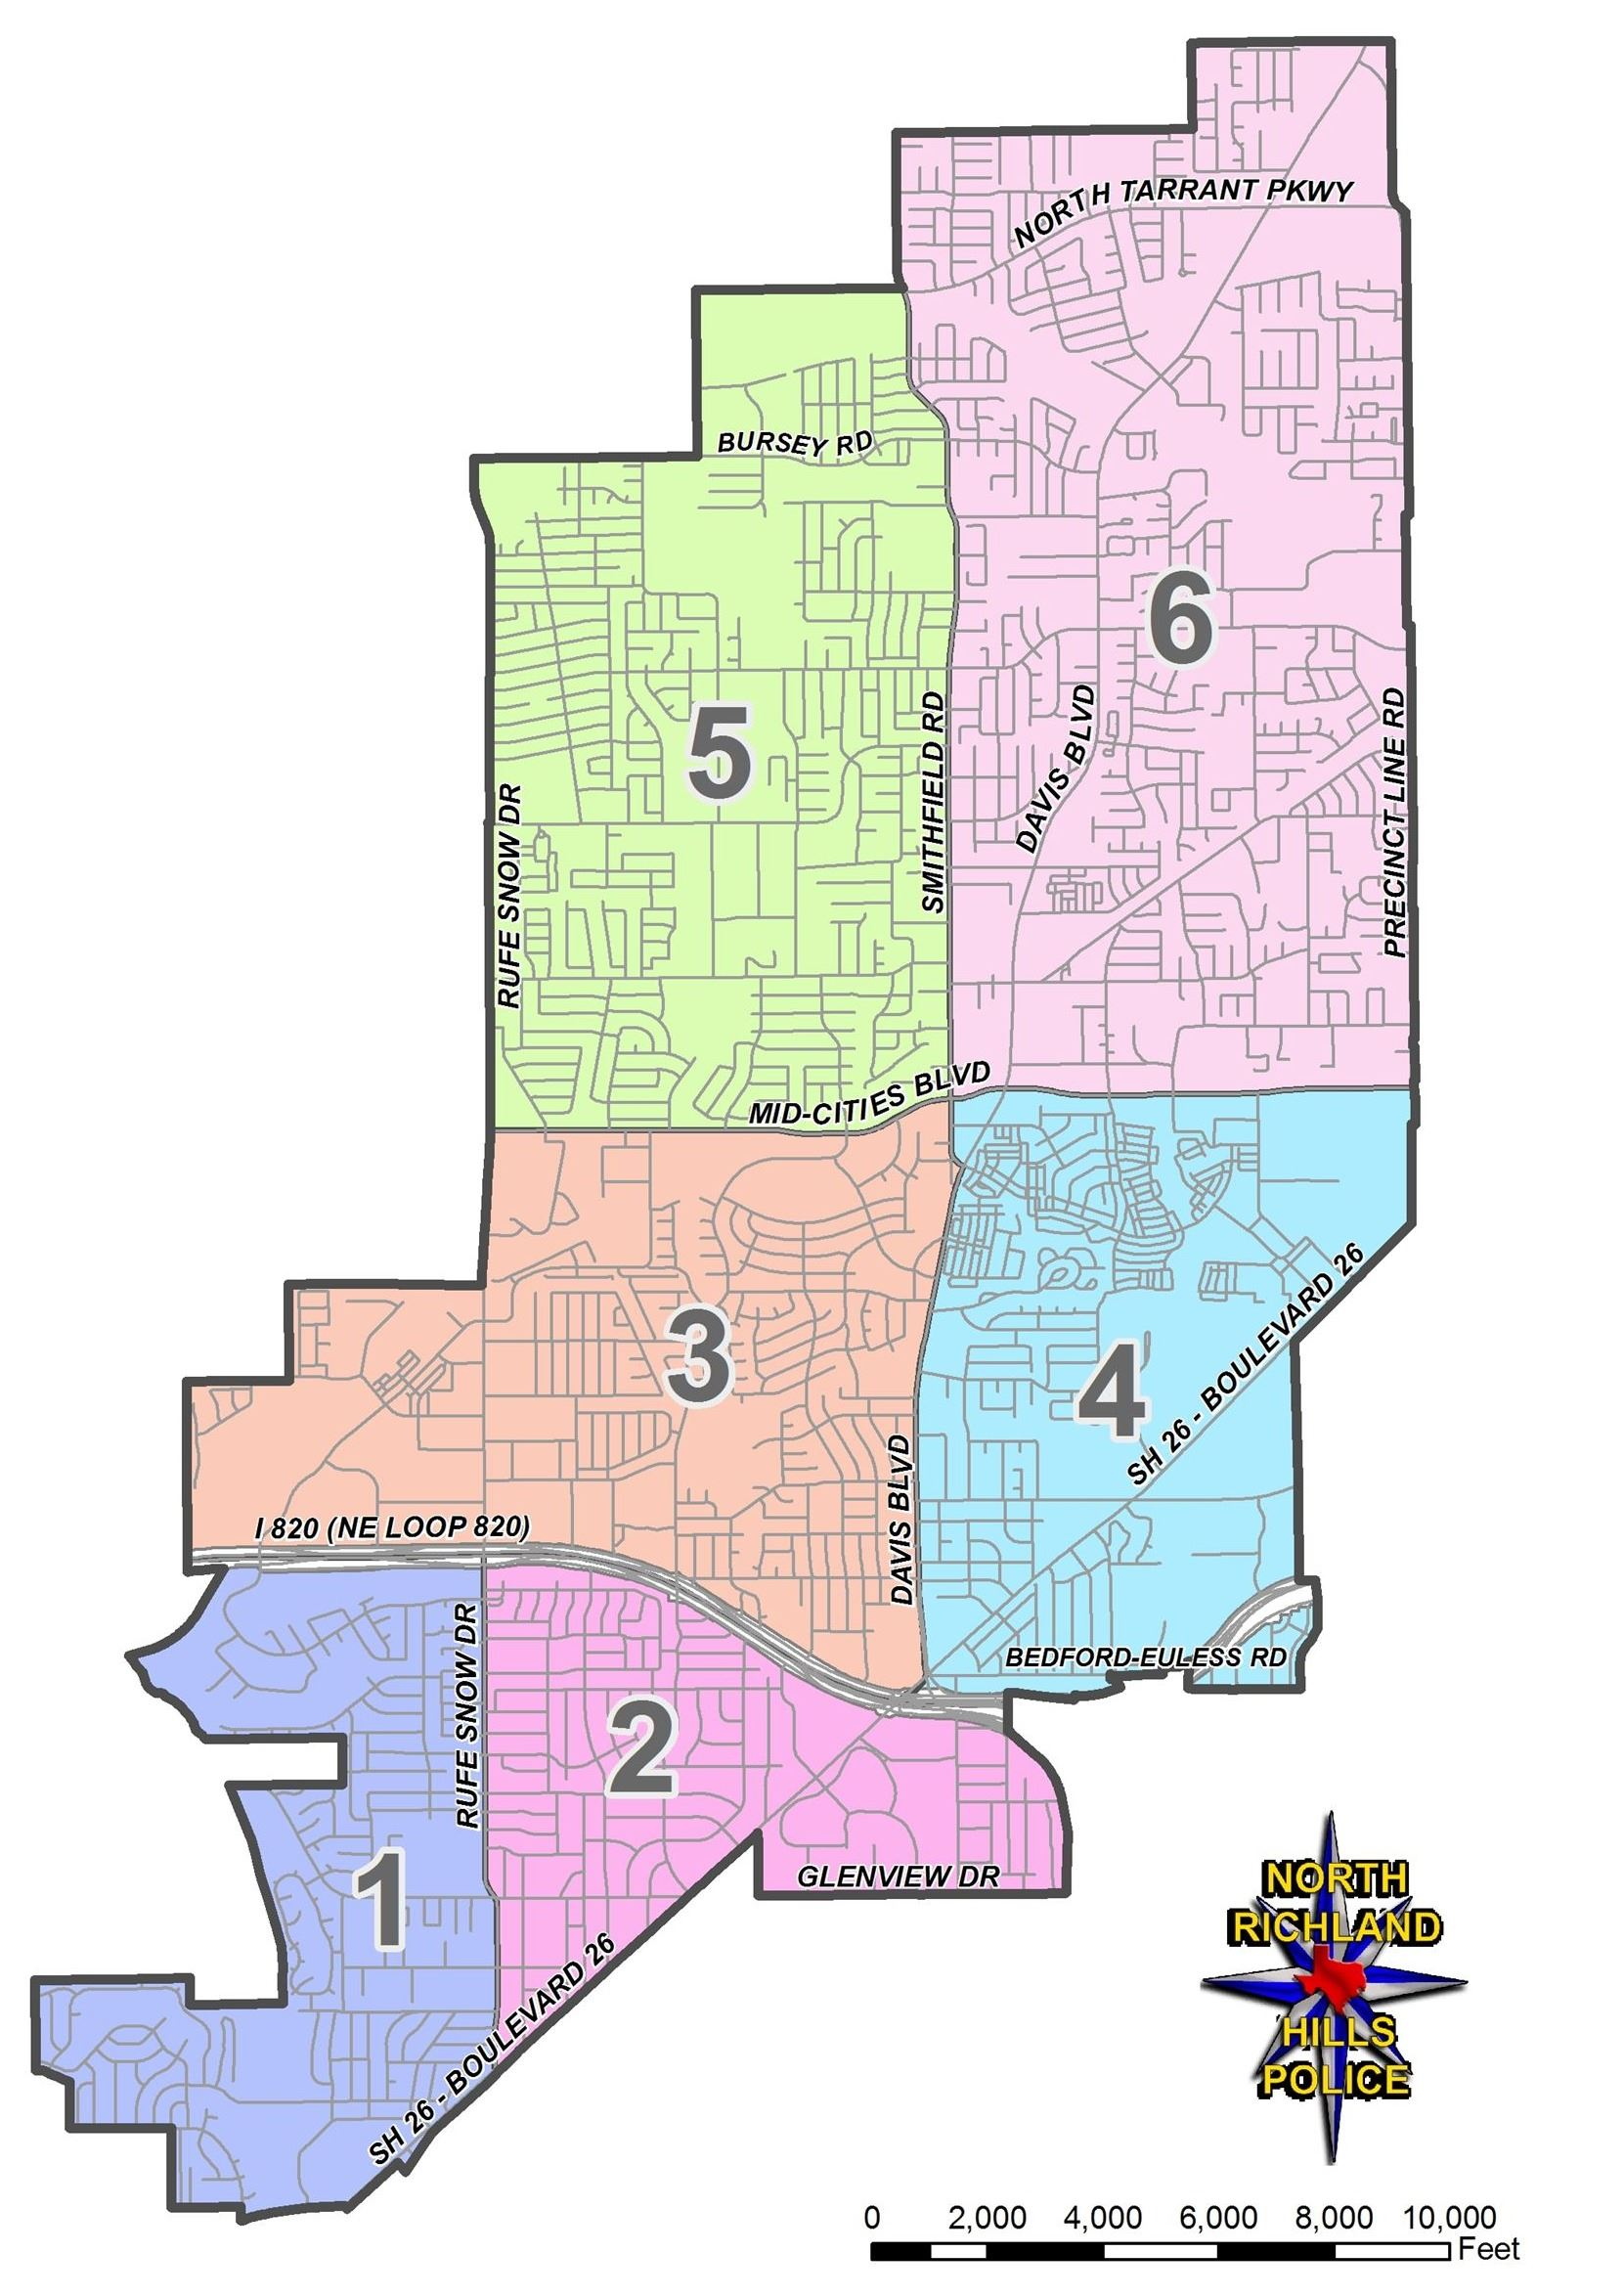 Police Districts 2019